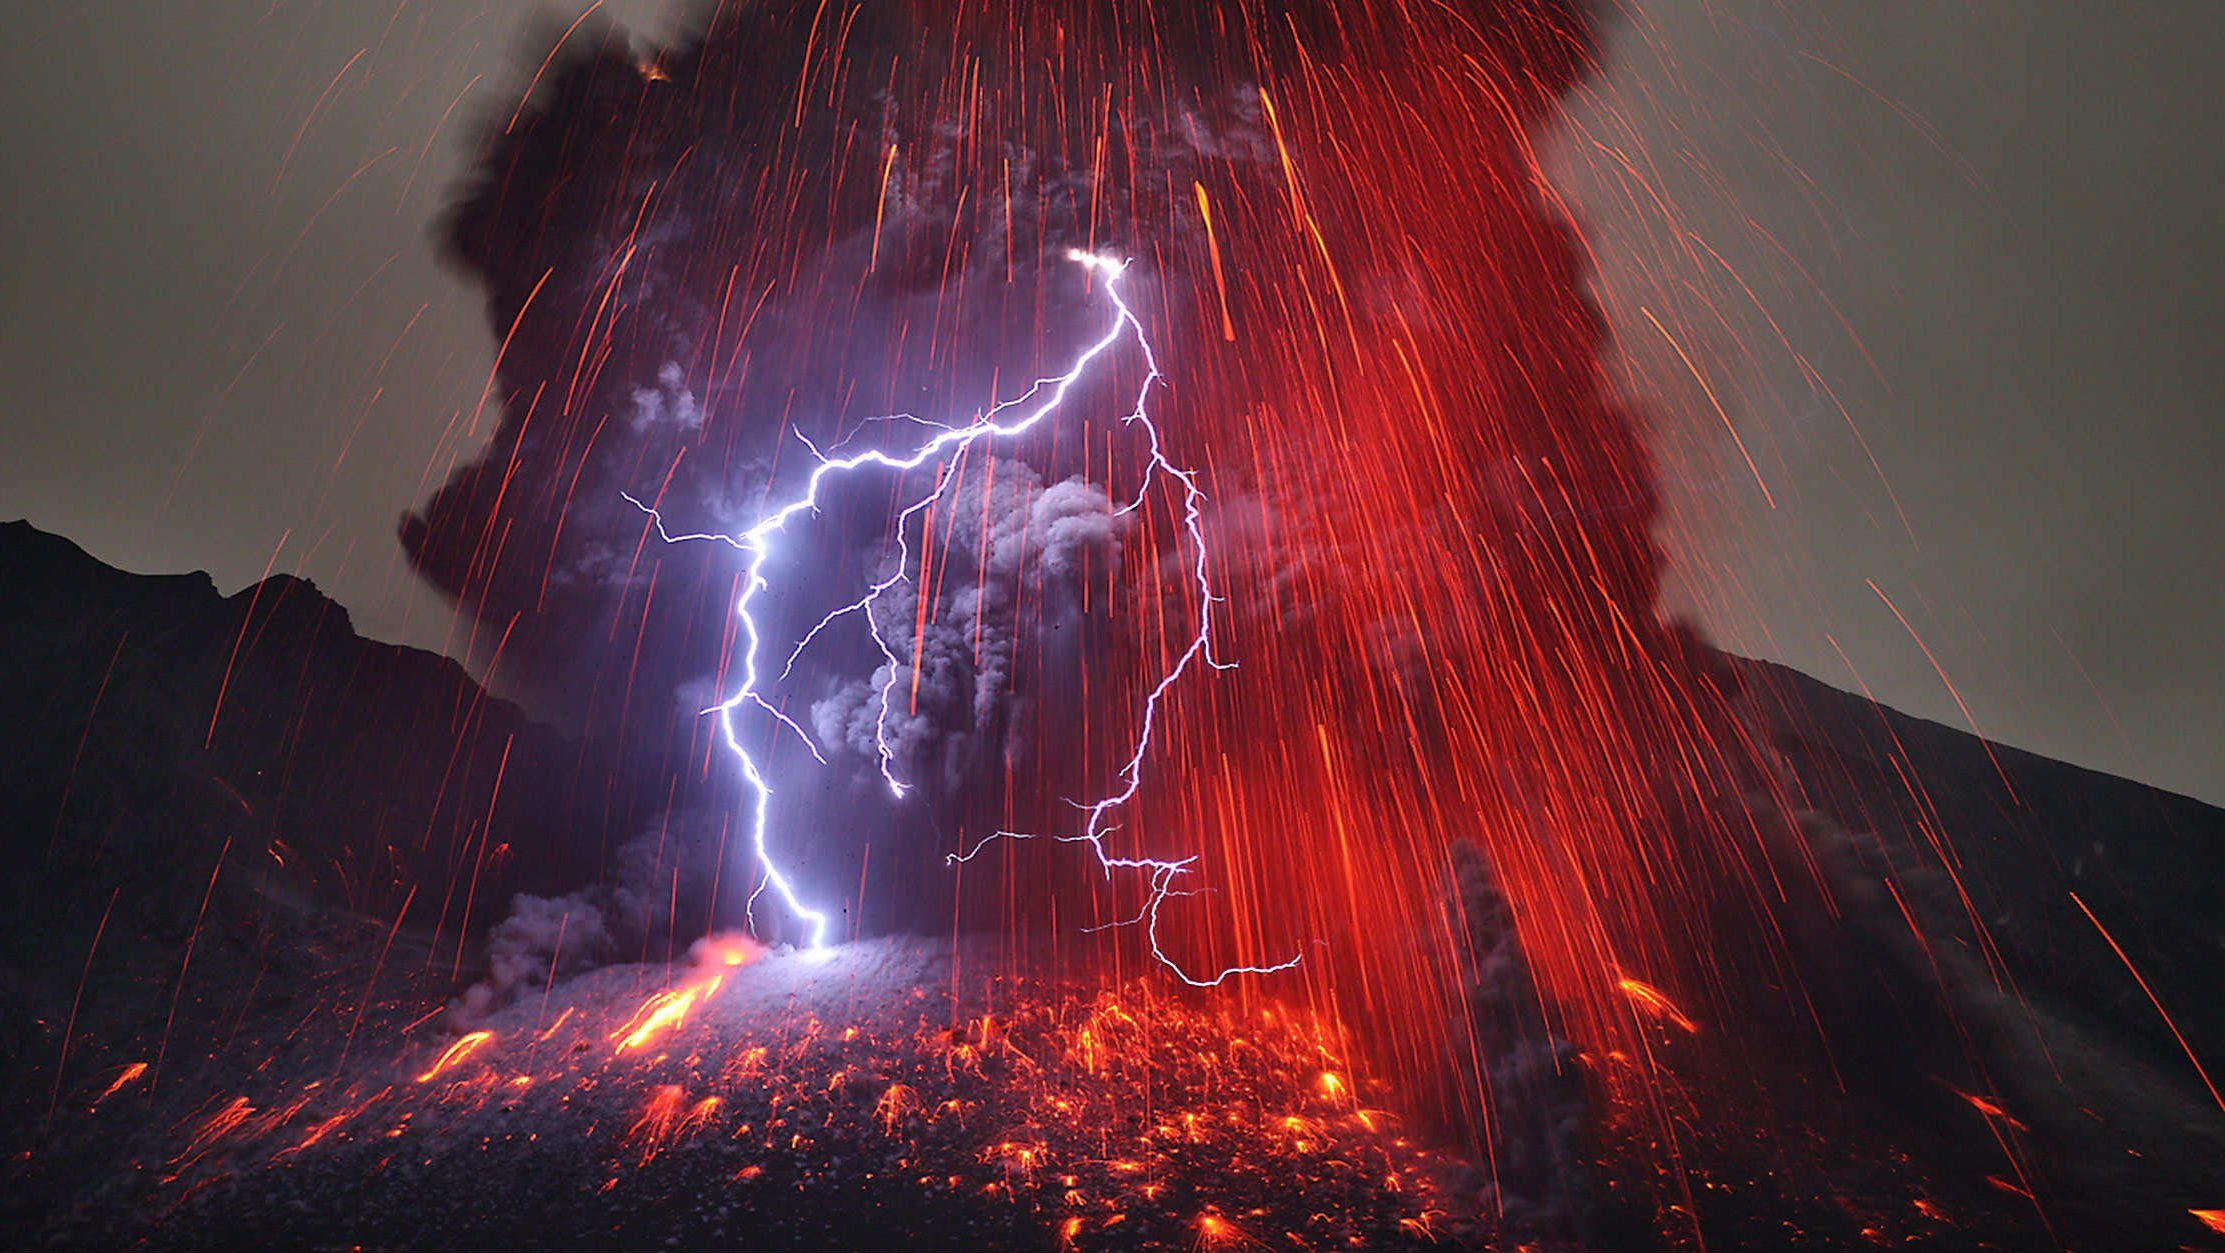 volcanic eruption with lightning and supercell photos for my wallpaper 936